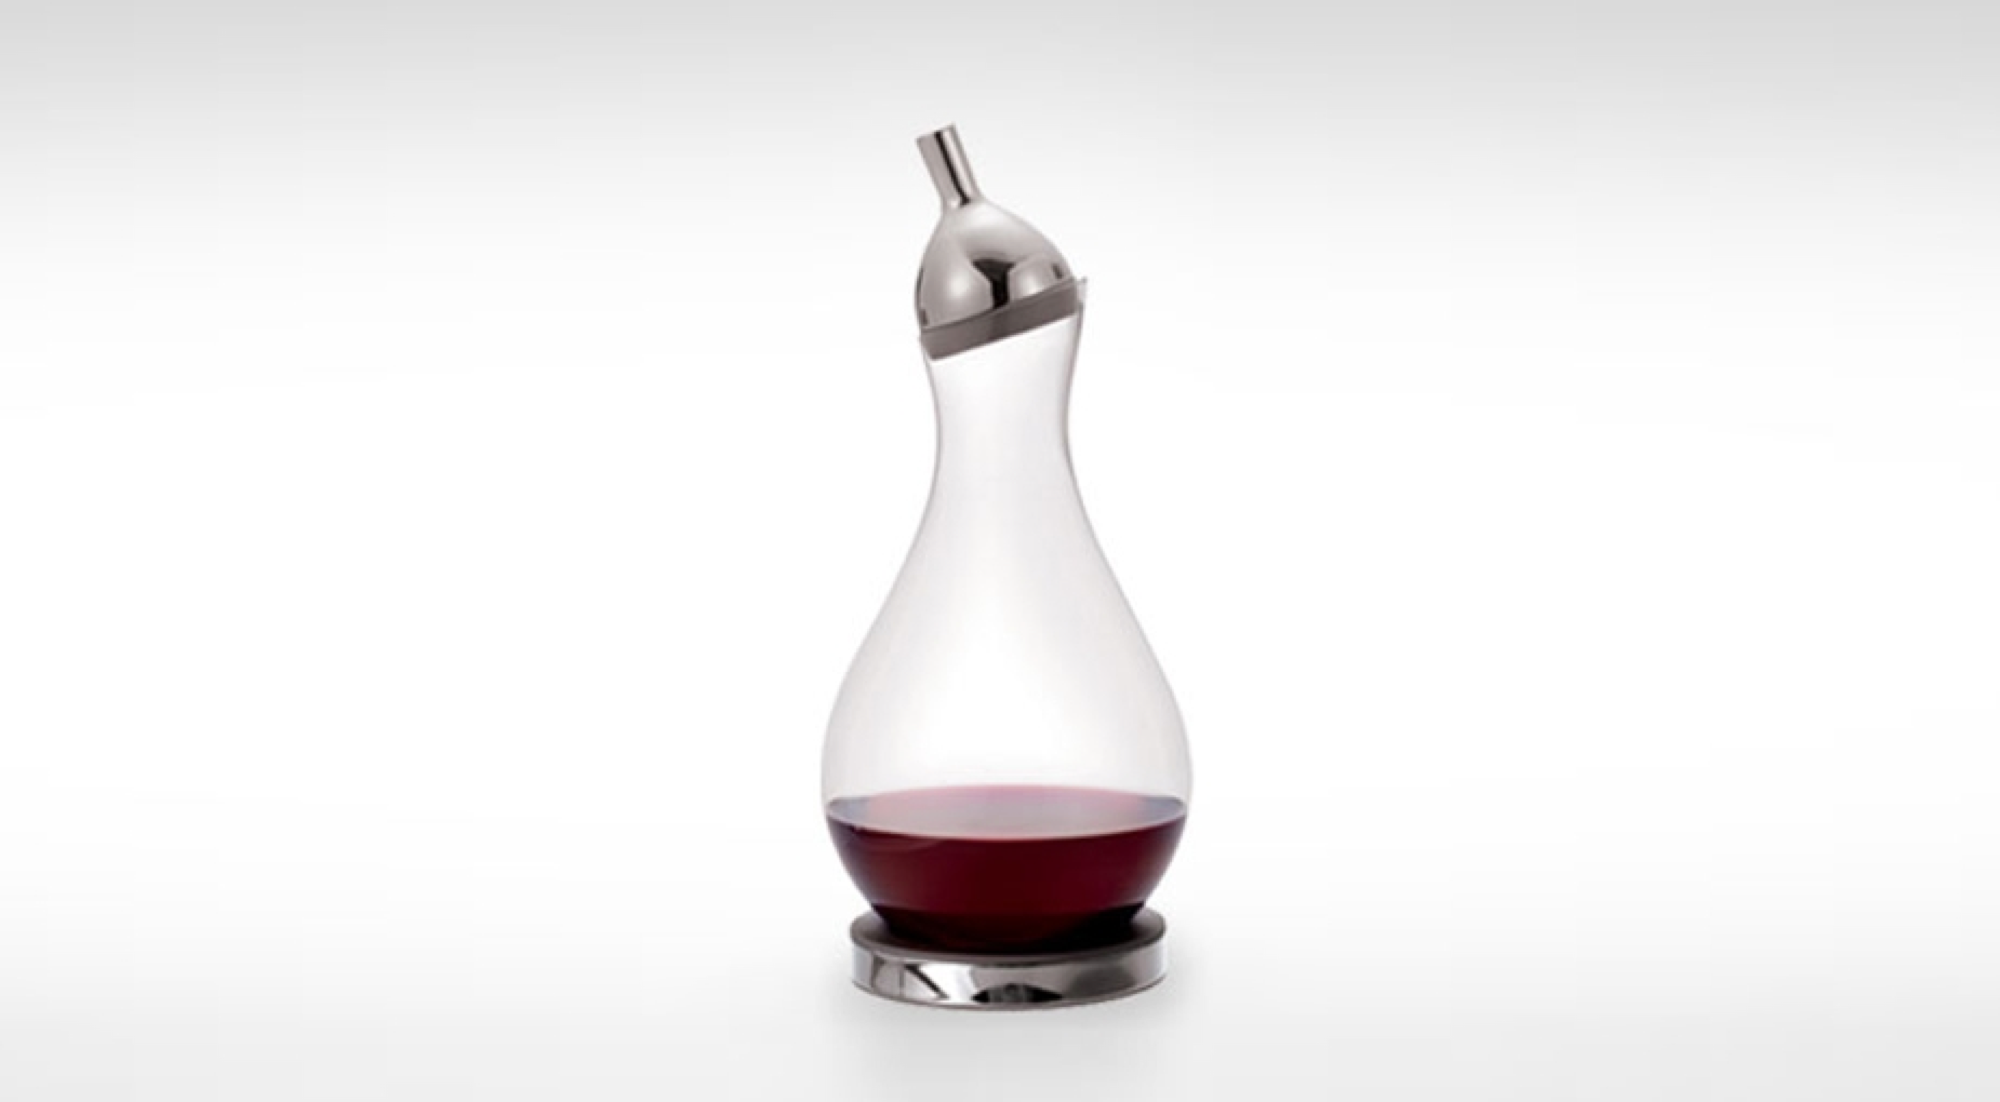 Hulu red wine decanter. Yung-ho chang.